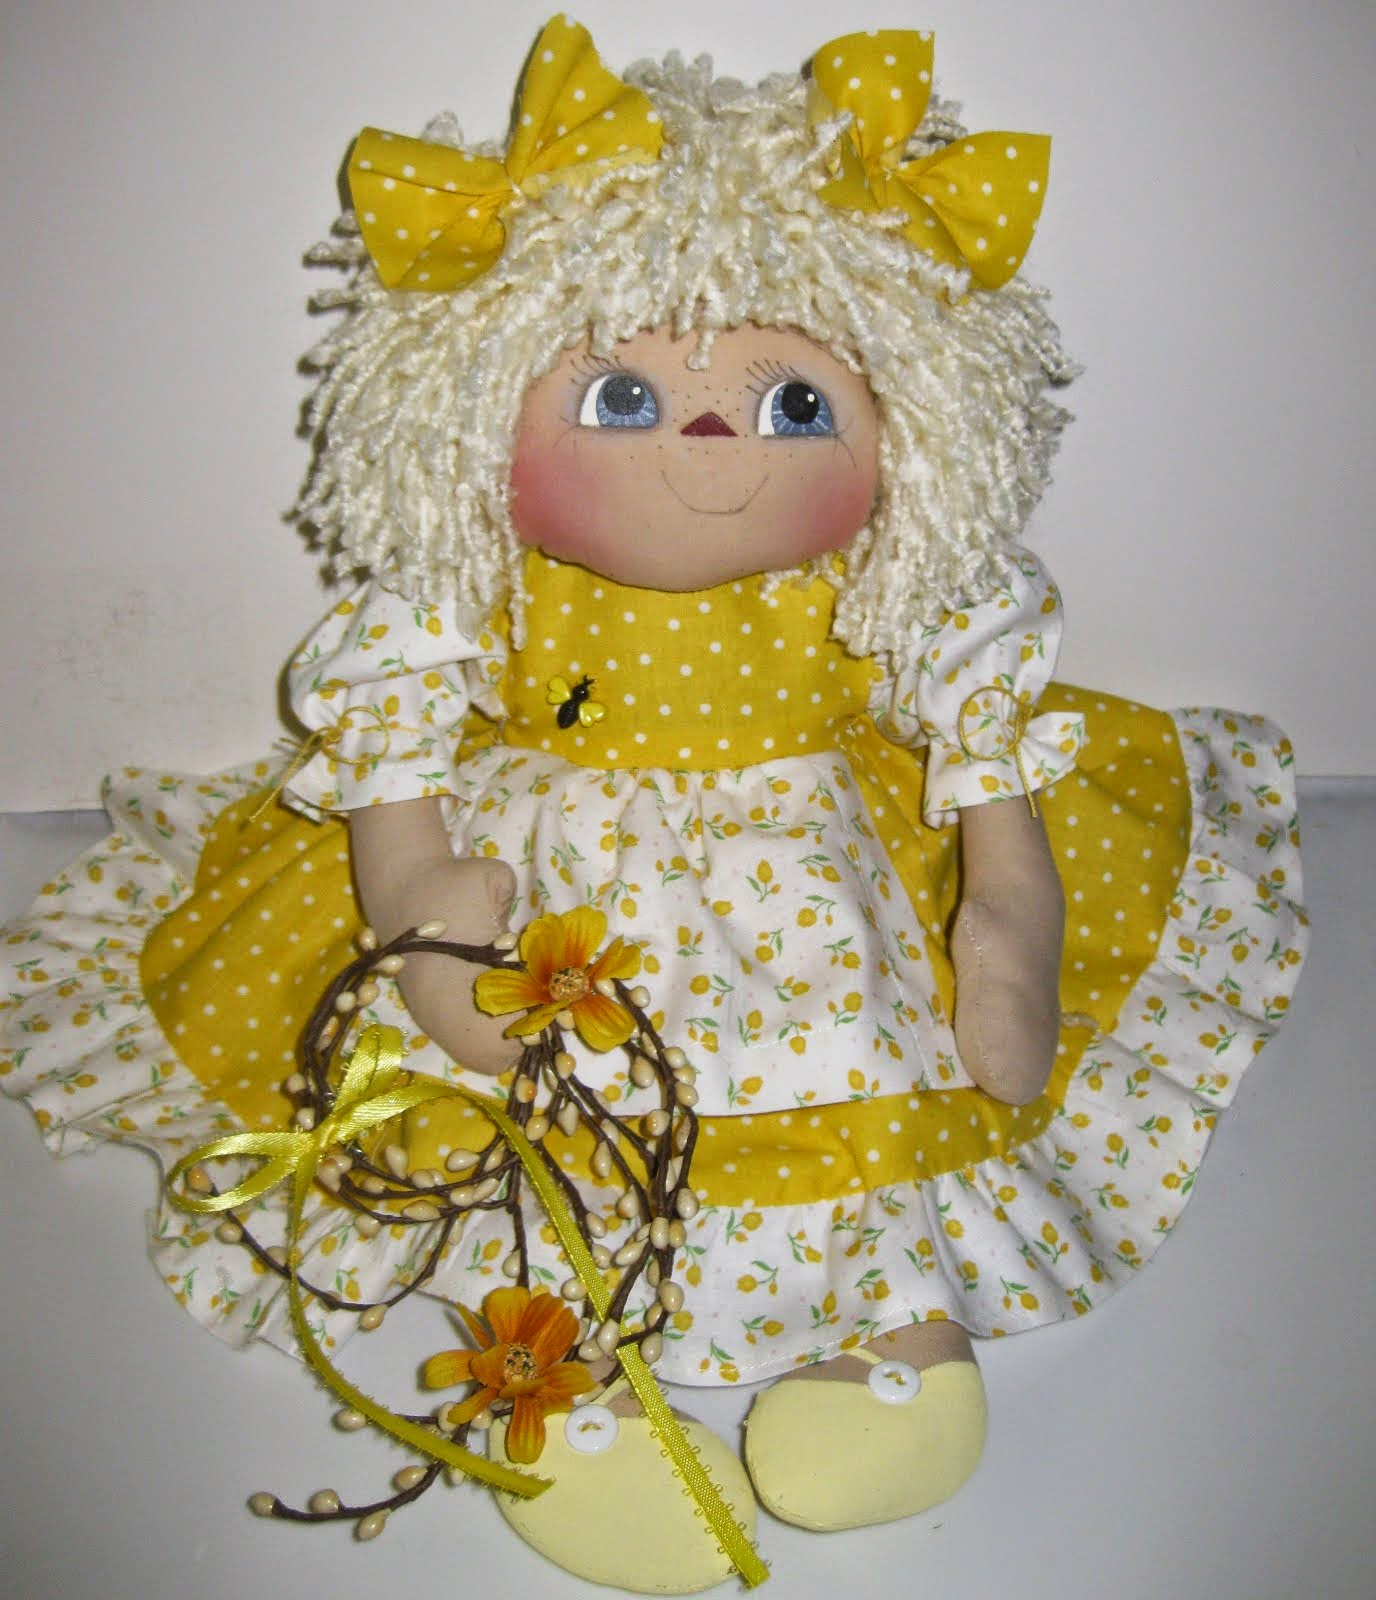 SWEET IN YELLOW 2014